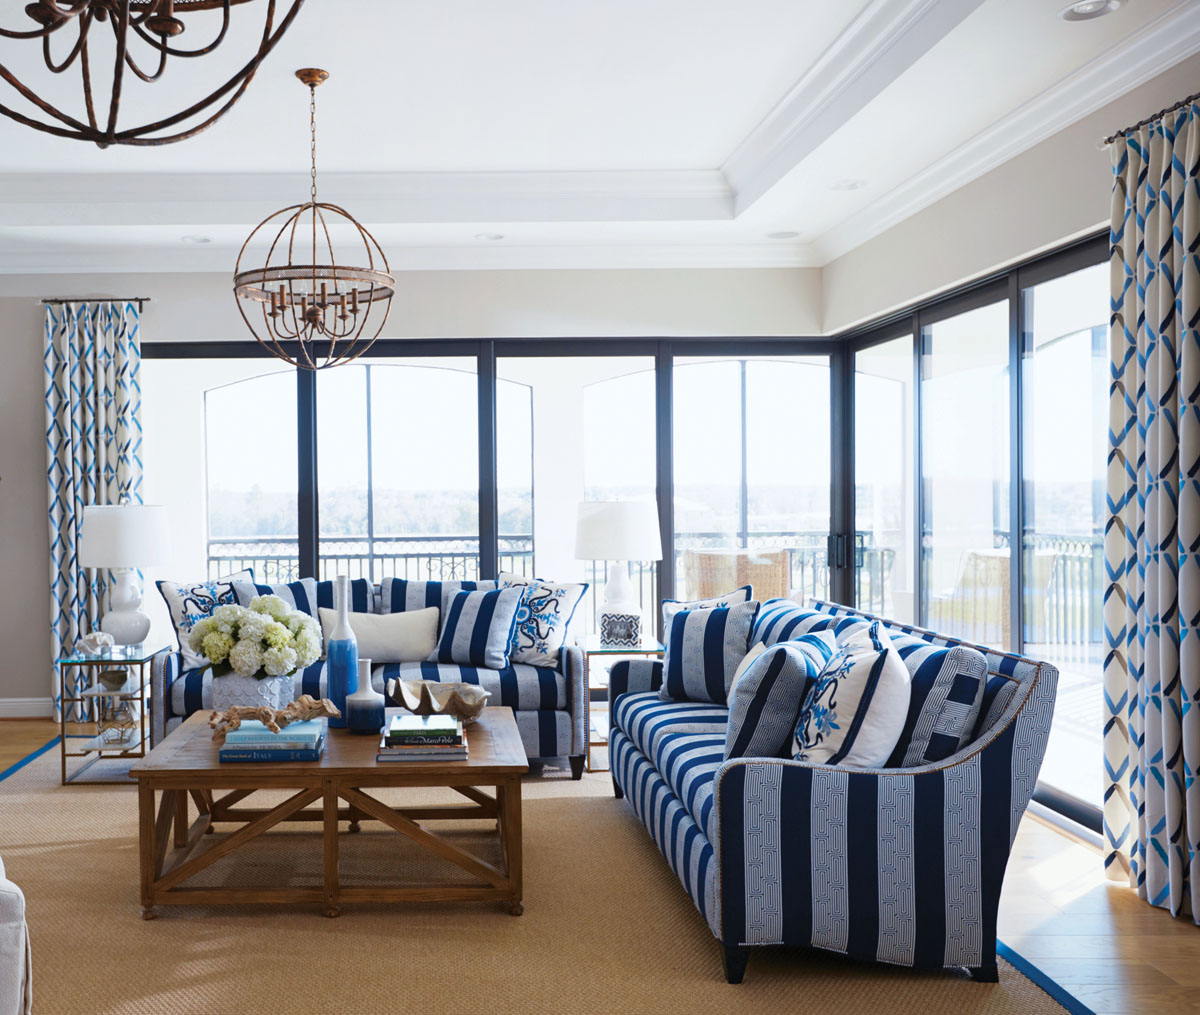 Straight lines and curvy elements continue in the living area, where Zêugma's open-globe chandeliers in an antique-gold finish dangle above CR Laine's sofas in bold stripes.